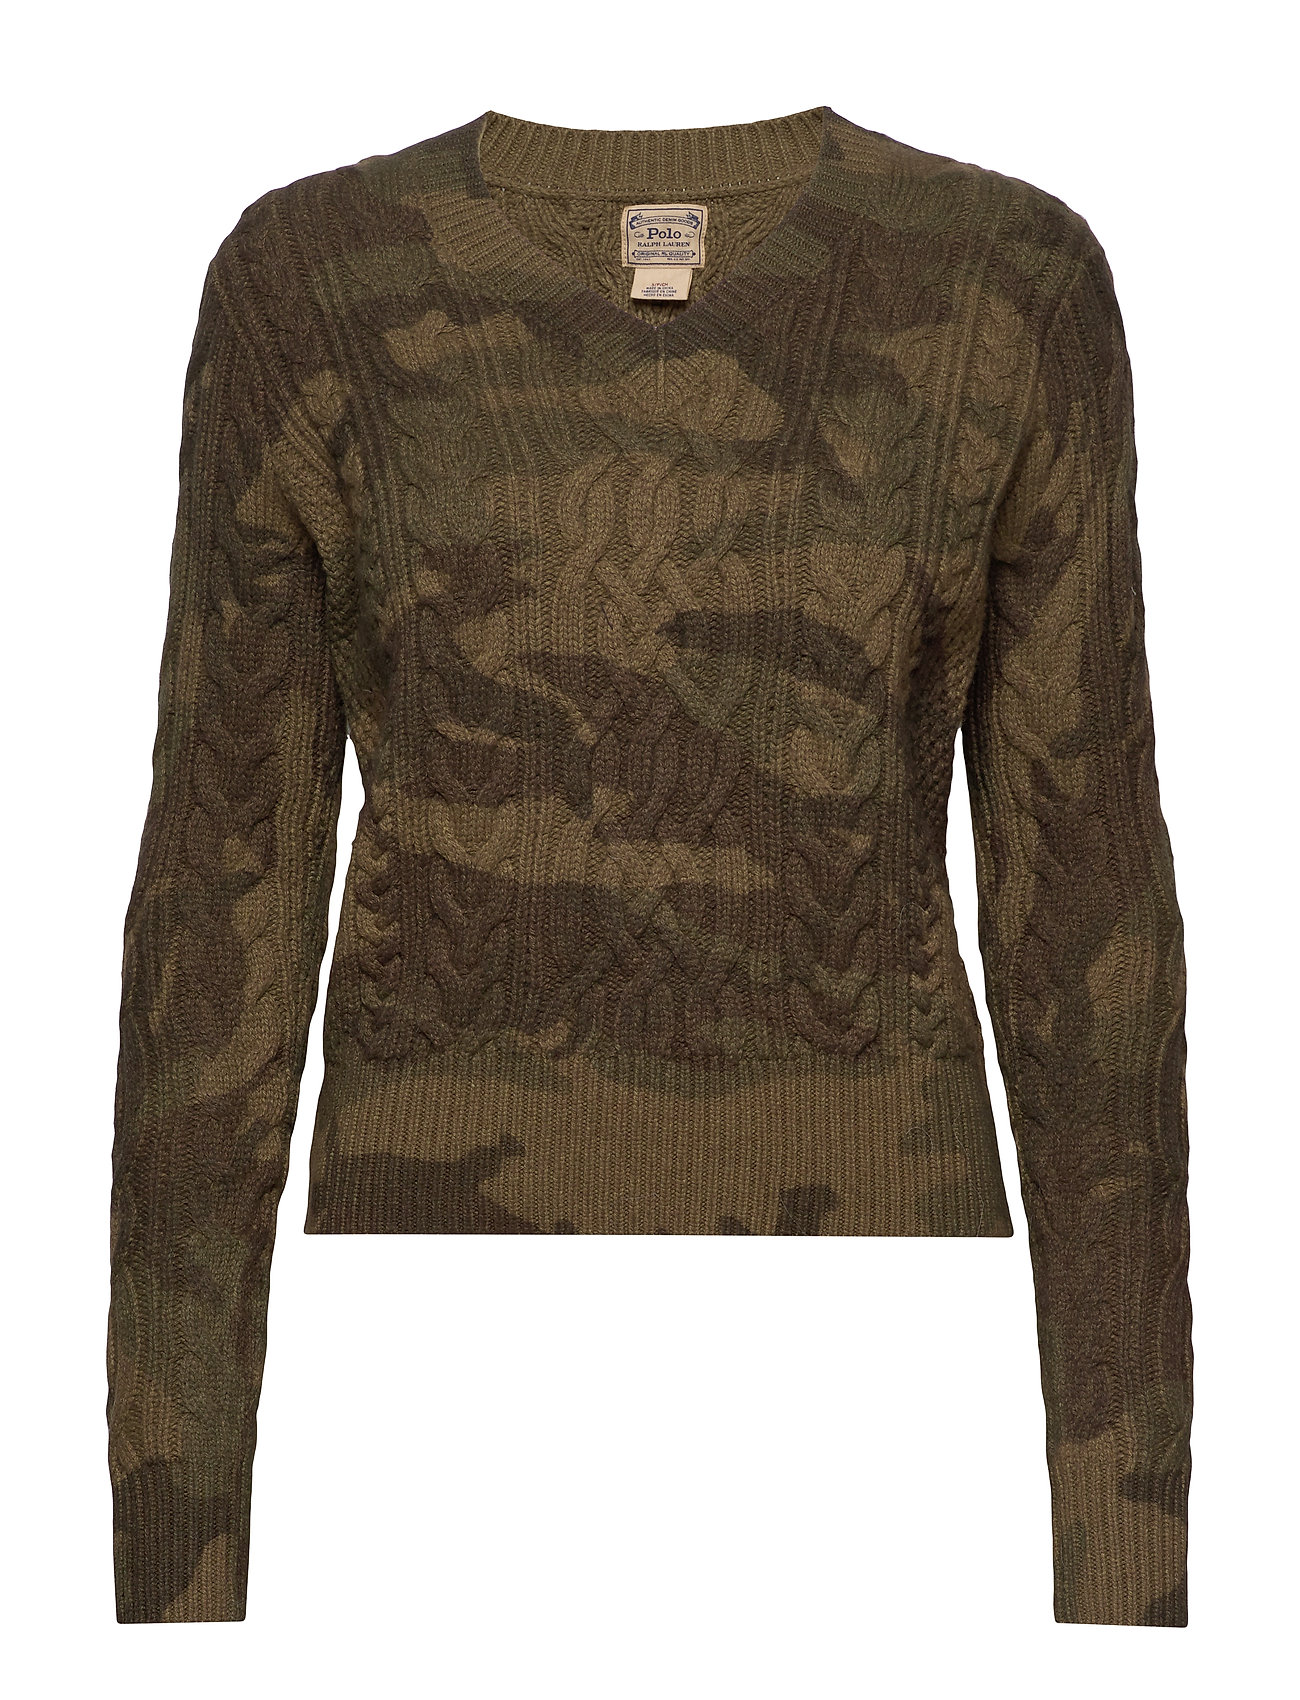 Polo Ralph Lauren Camo Cable-Knit Sweater - CAMO